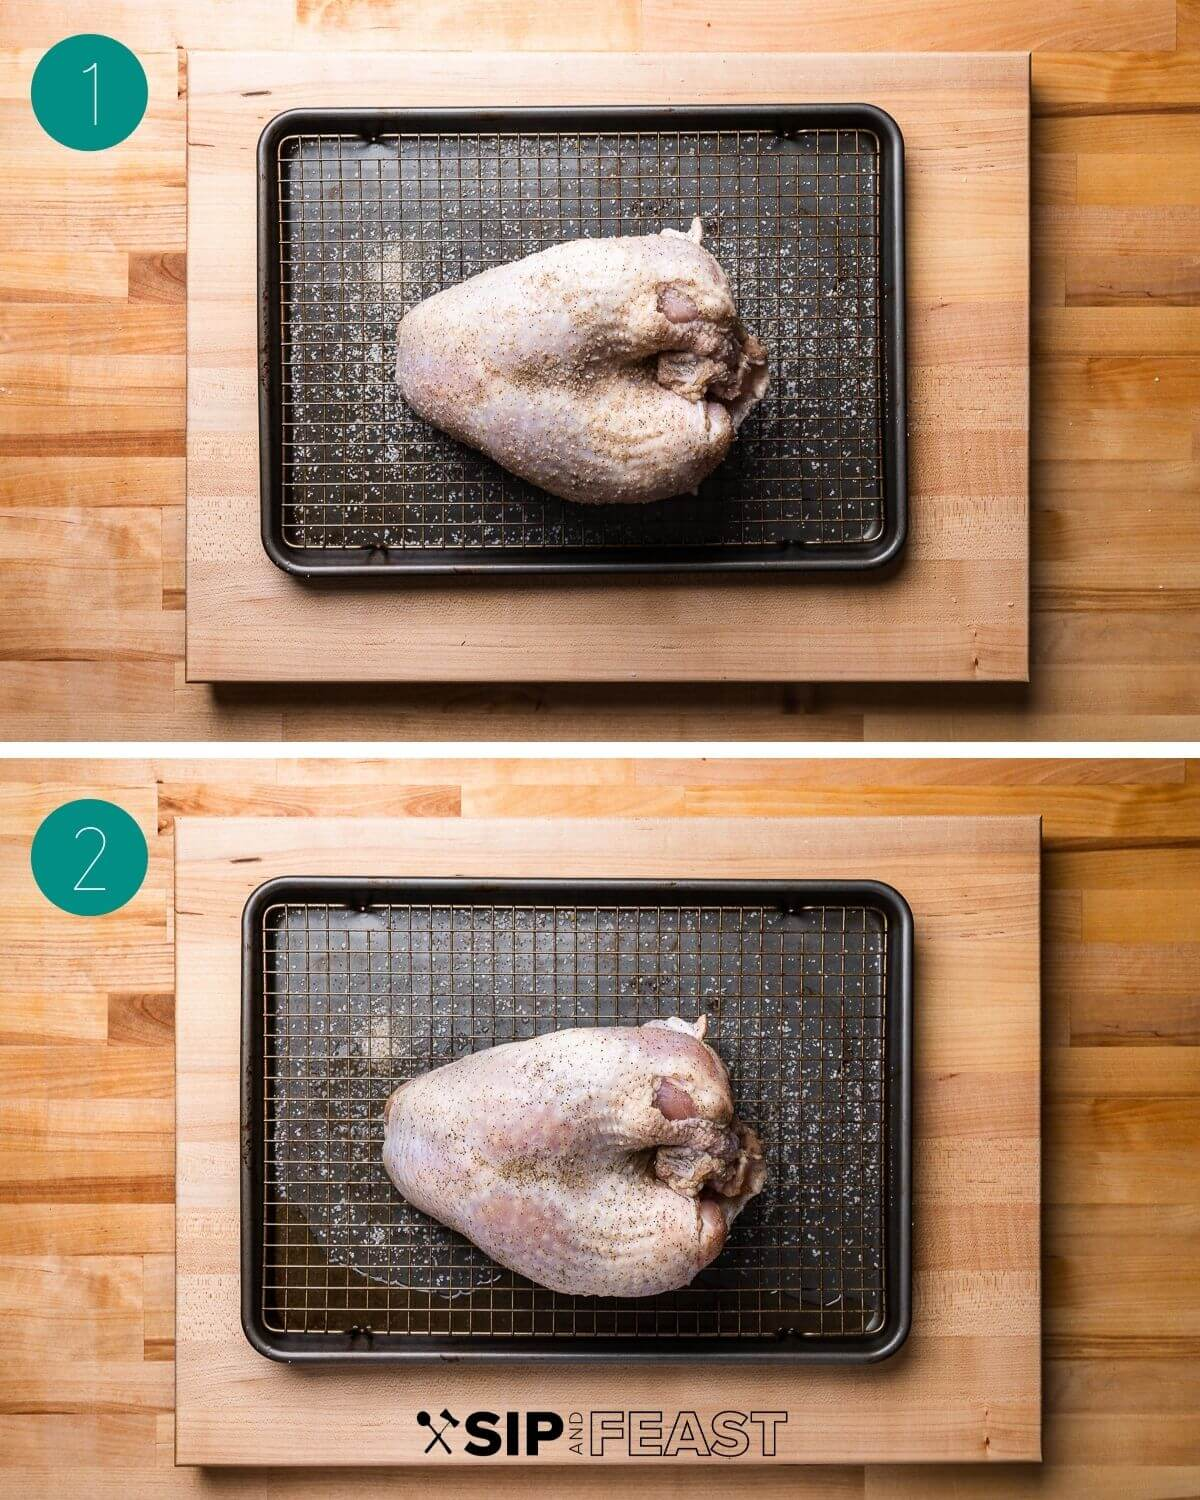 Dry brined turkey breast recipe process shot collage group number one.